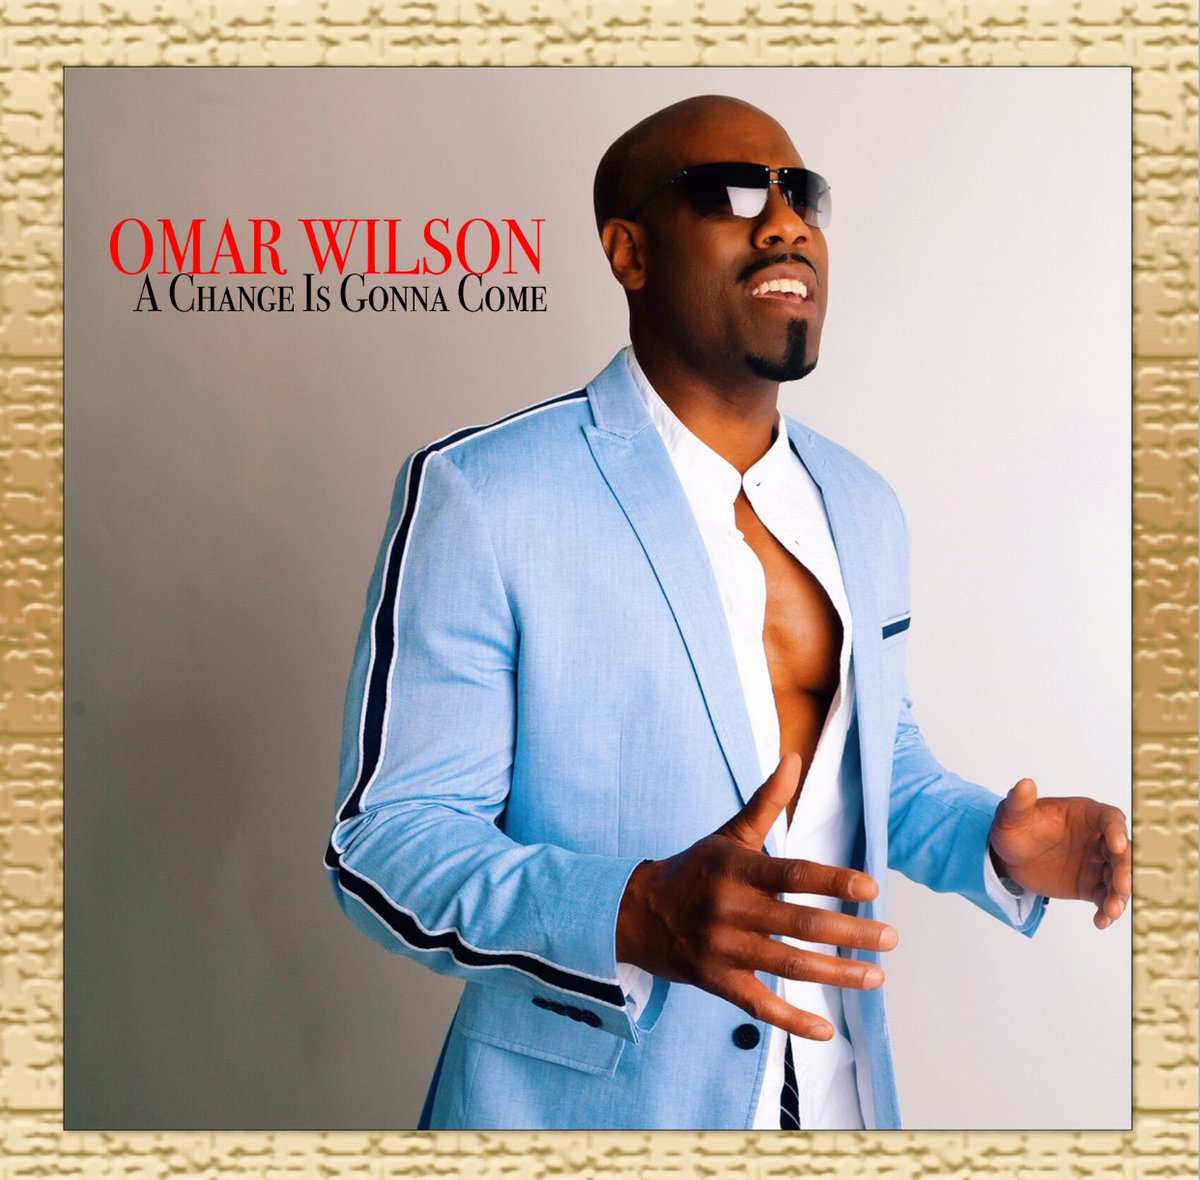 After coming off his stunning rendition of JAMES BROWN ITS A MANS WORLD BSE Recordings Artist OMAR WILSON @OmarWilson will release A Change is Gonna Come previously performed by the great Sam Cooke on 9/28/18 in Epic fashion as only Omar Wilson can!! #Soul Media #RnB